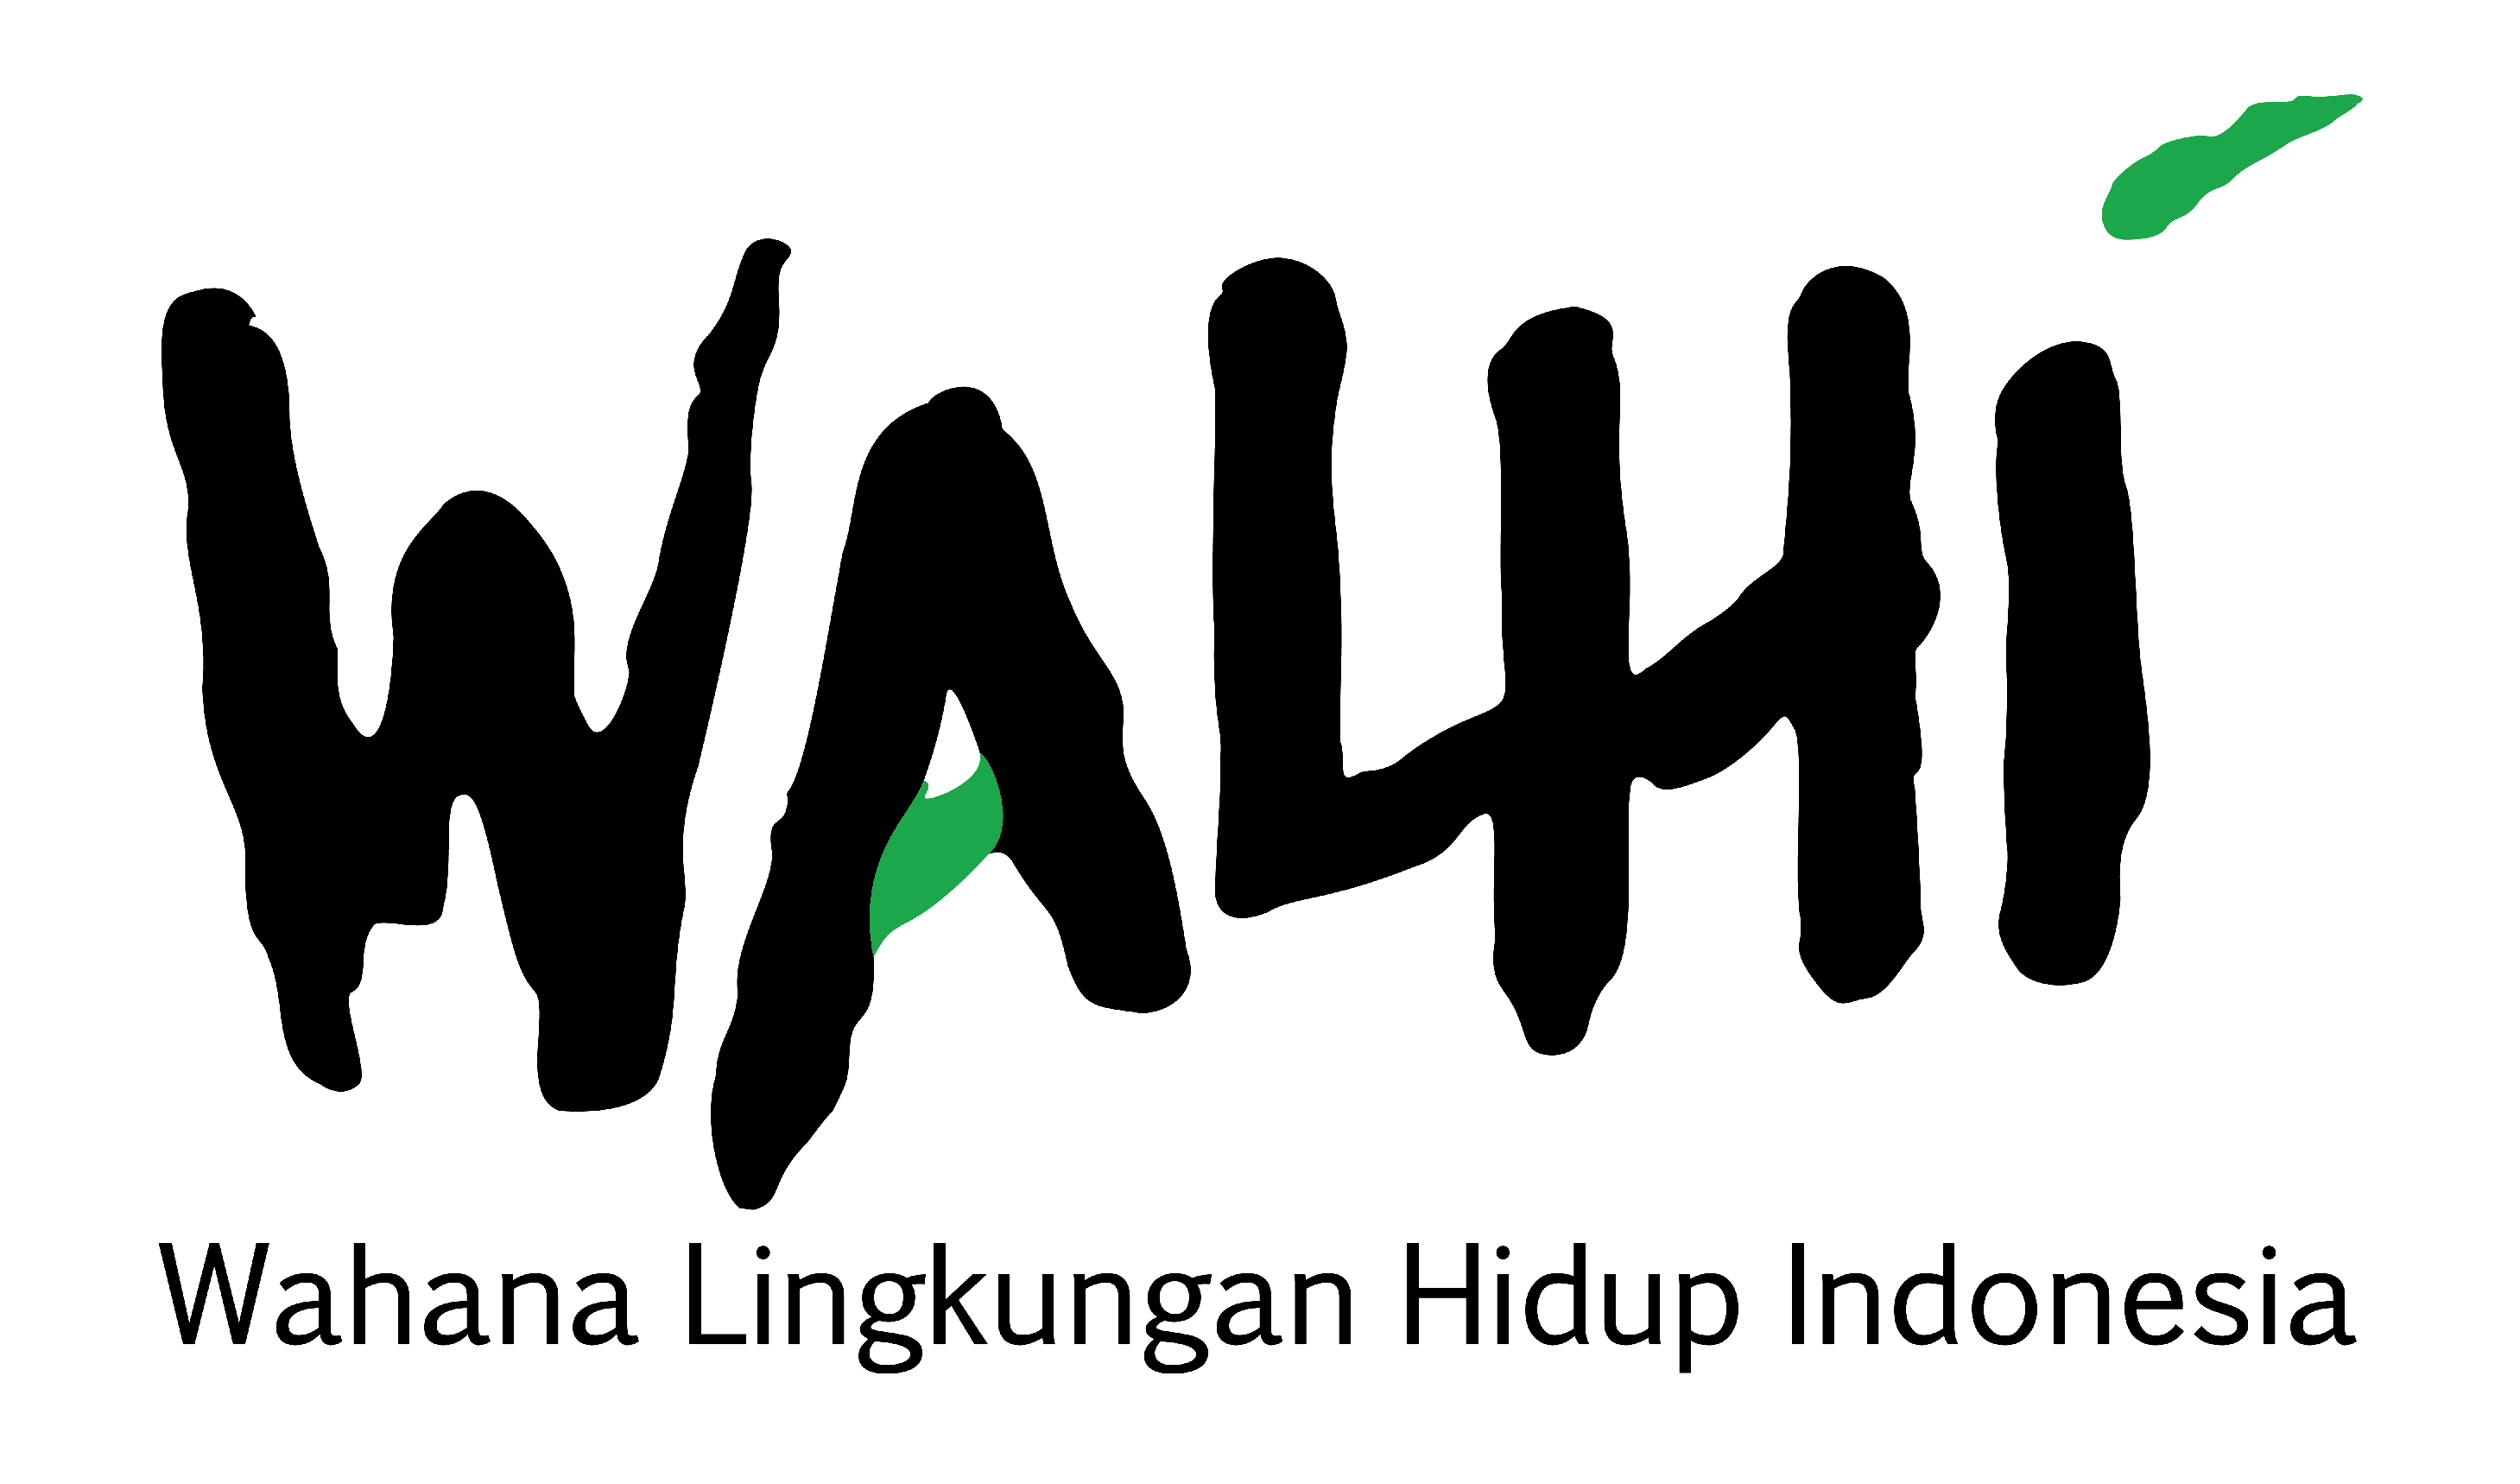 WALHI (The Indonesian Forum for Environment)